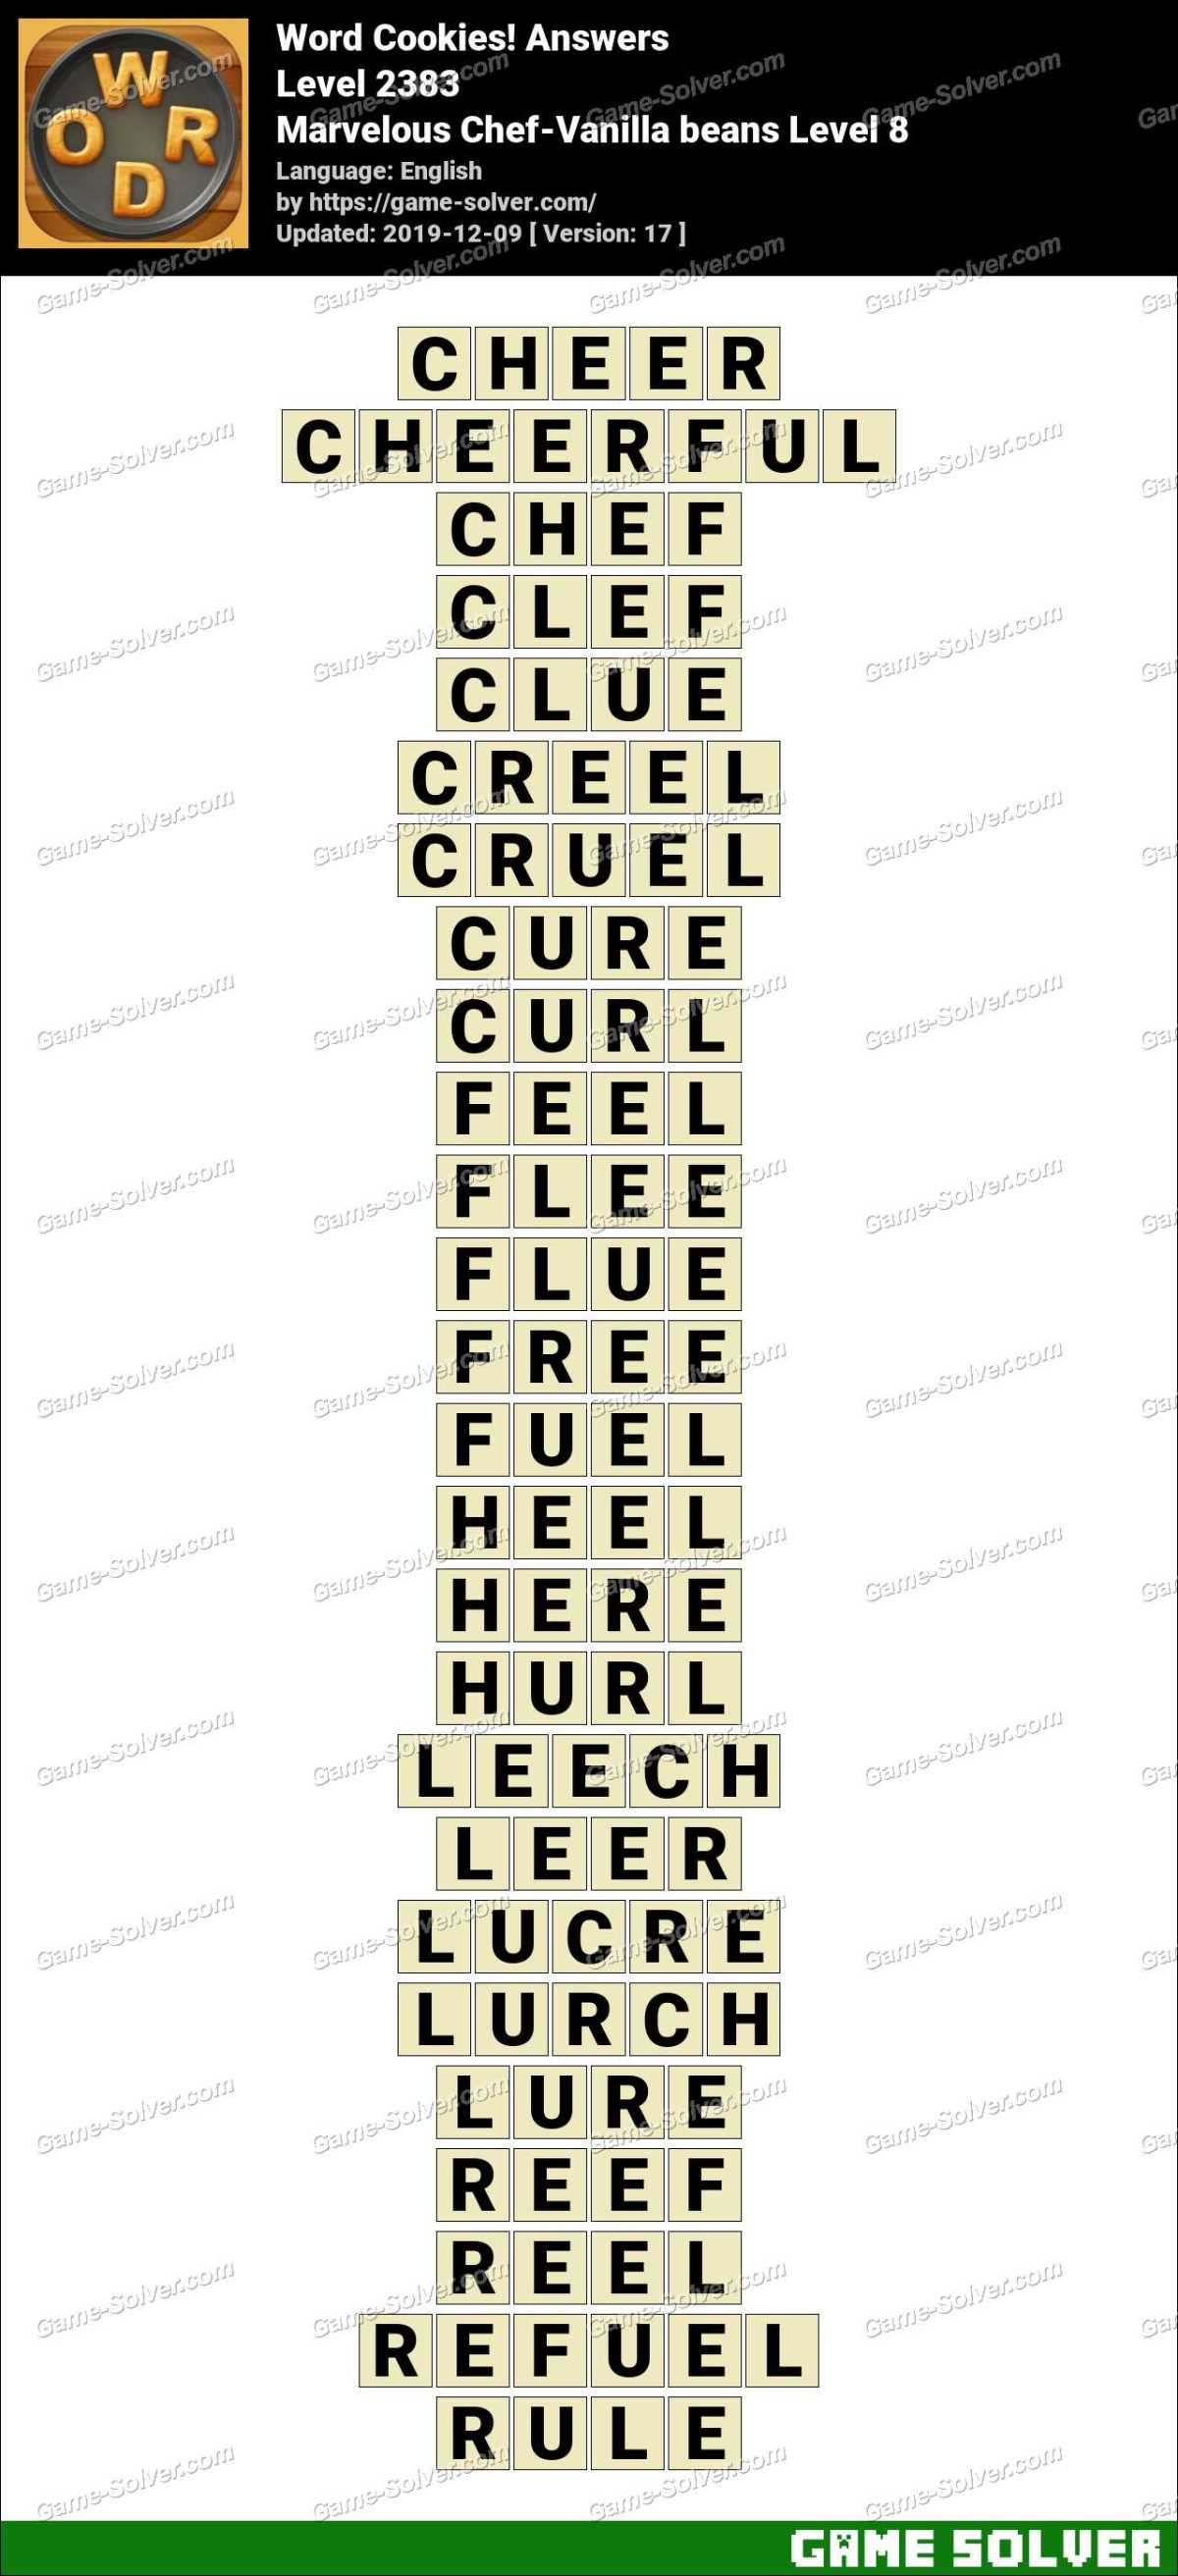 Word Cookies Marvelous Chef-Vanilla beans Level 8 Answers